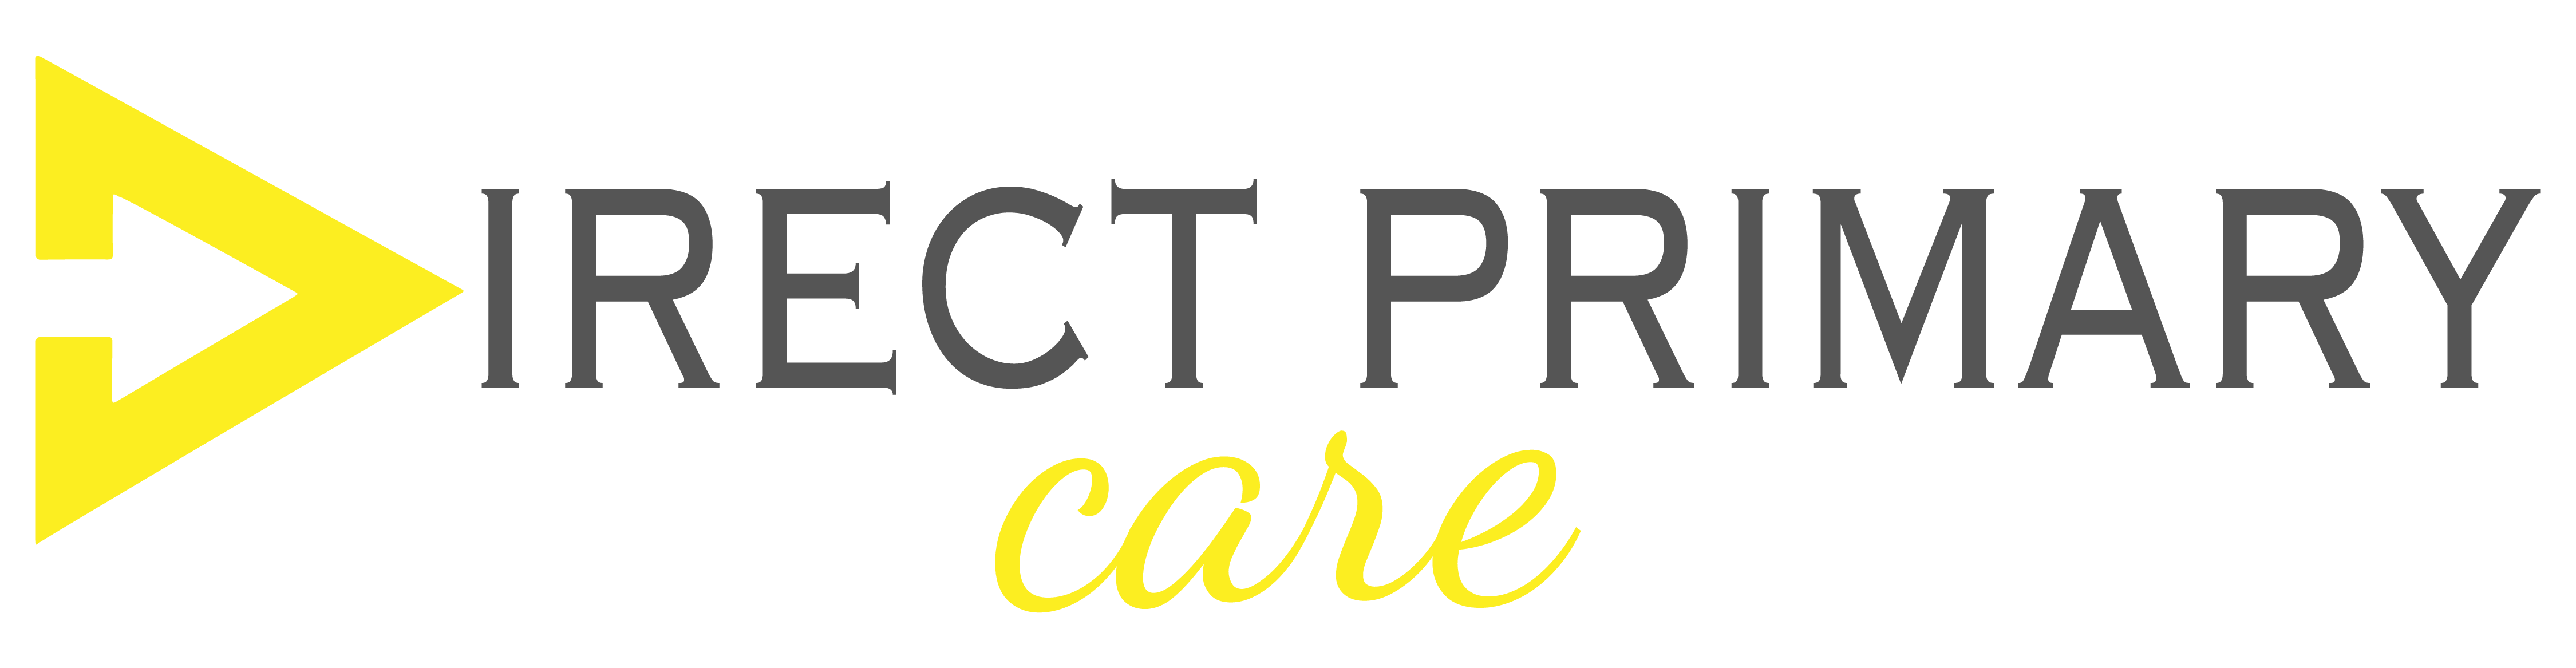 Direct Primary Care